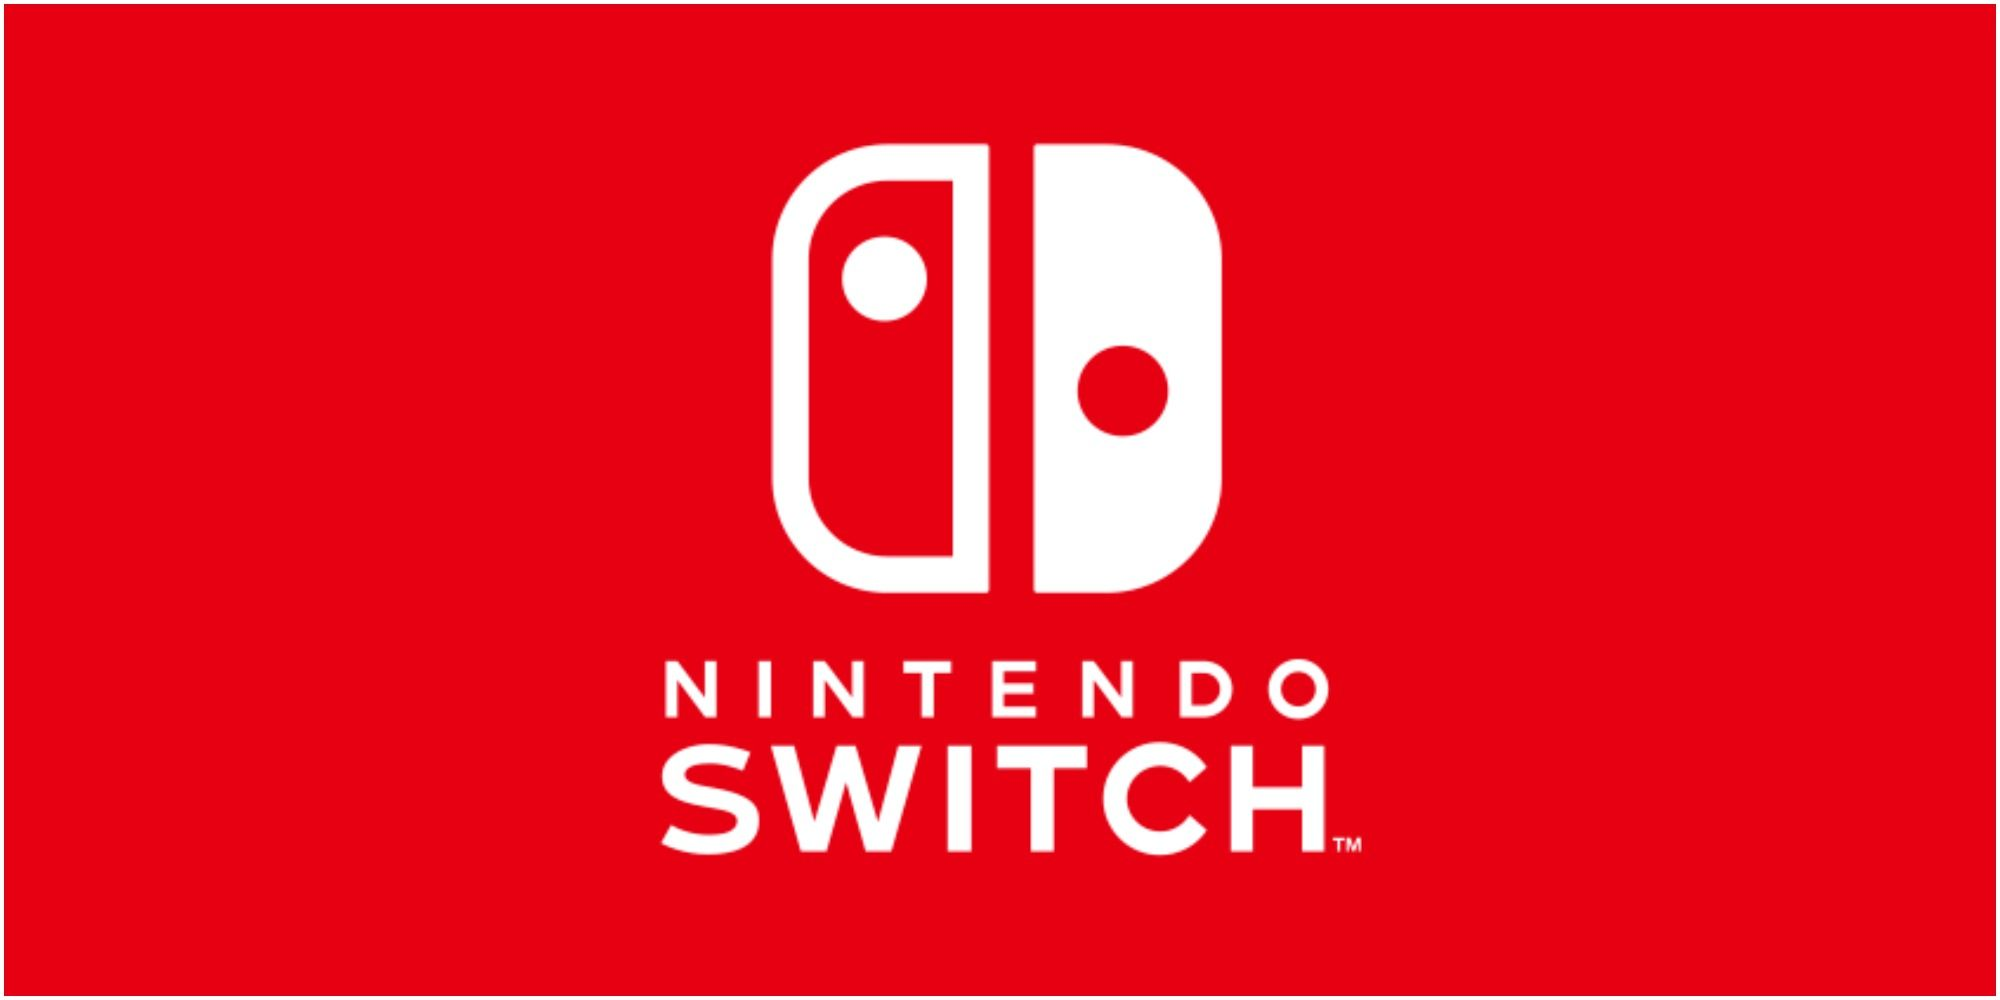 Nintendo Switch: How To Transfer Your Game Photos To Your Smart Device